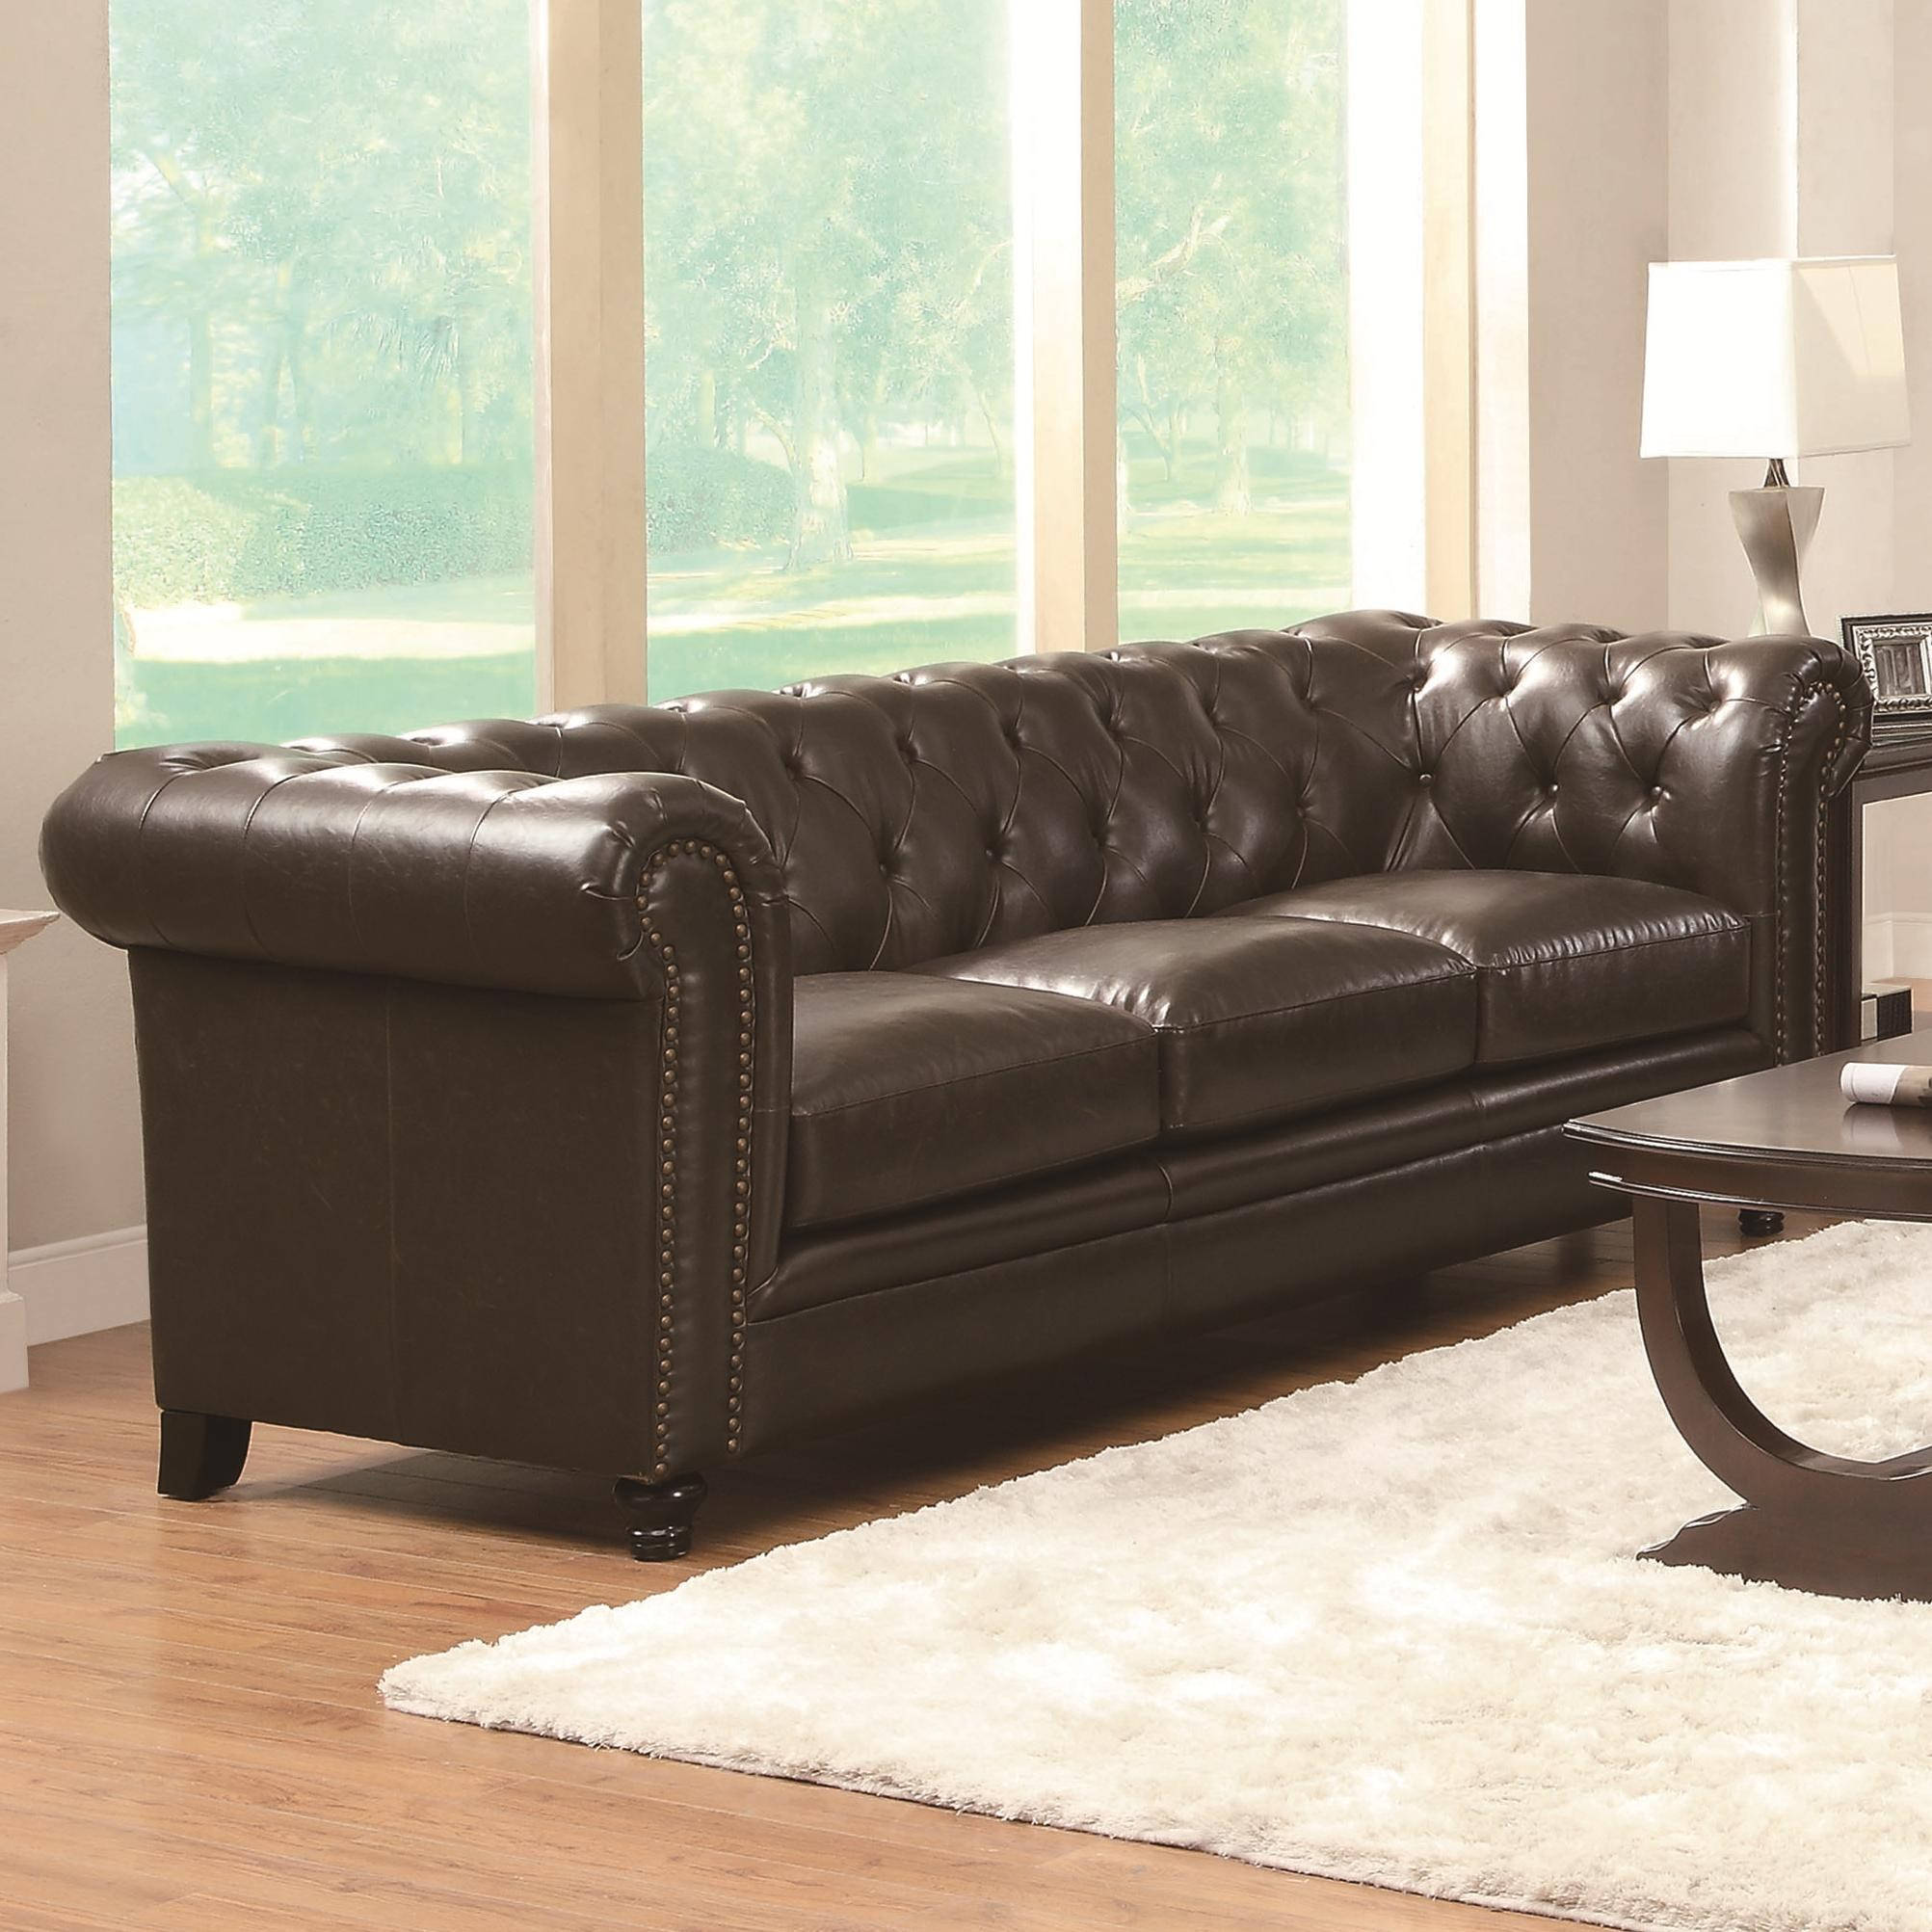 Coaster Furniture Roy Brown Bonded Leather Sofa | The Classy Home